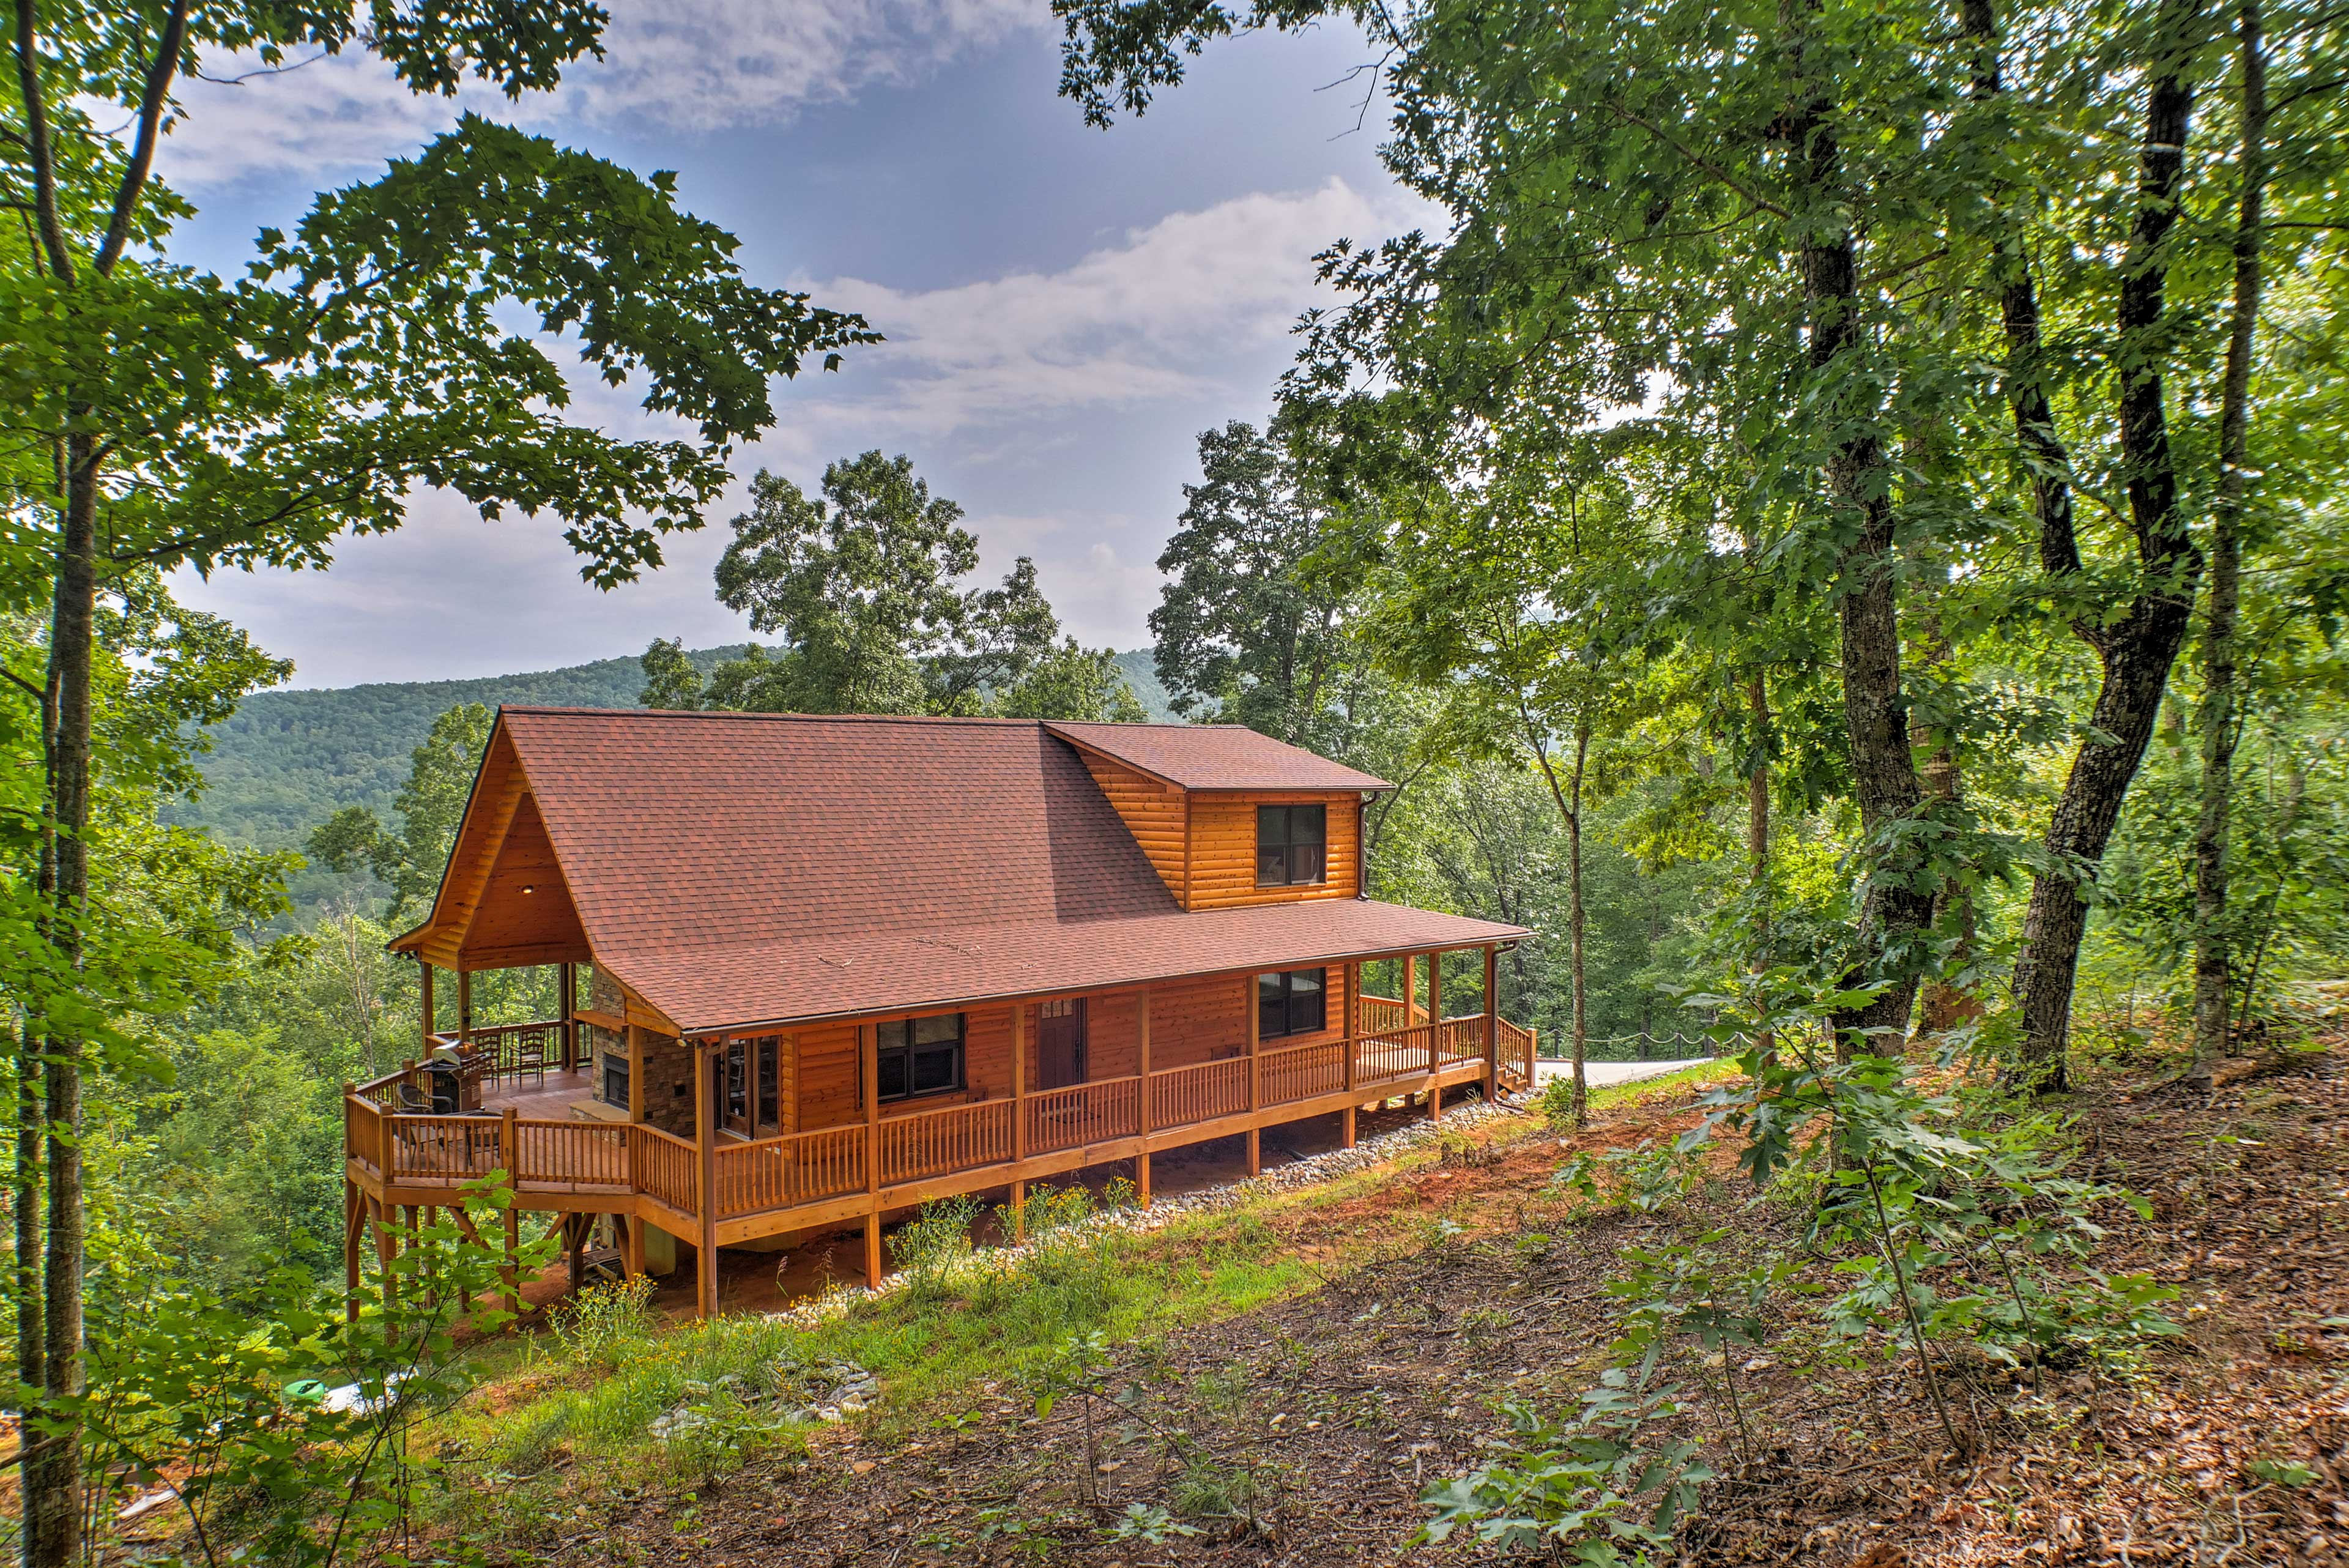 The charming home is surrounded by lush scenery.